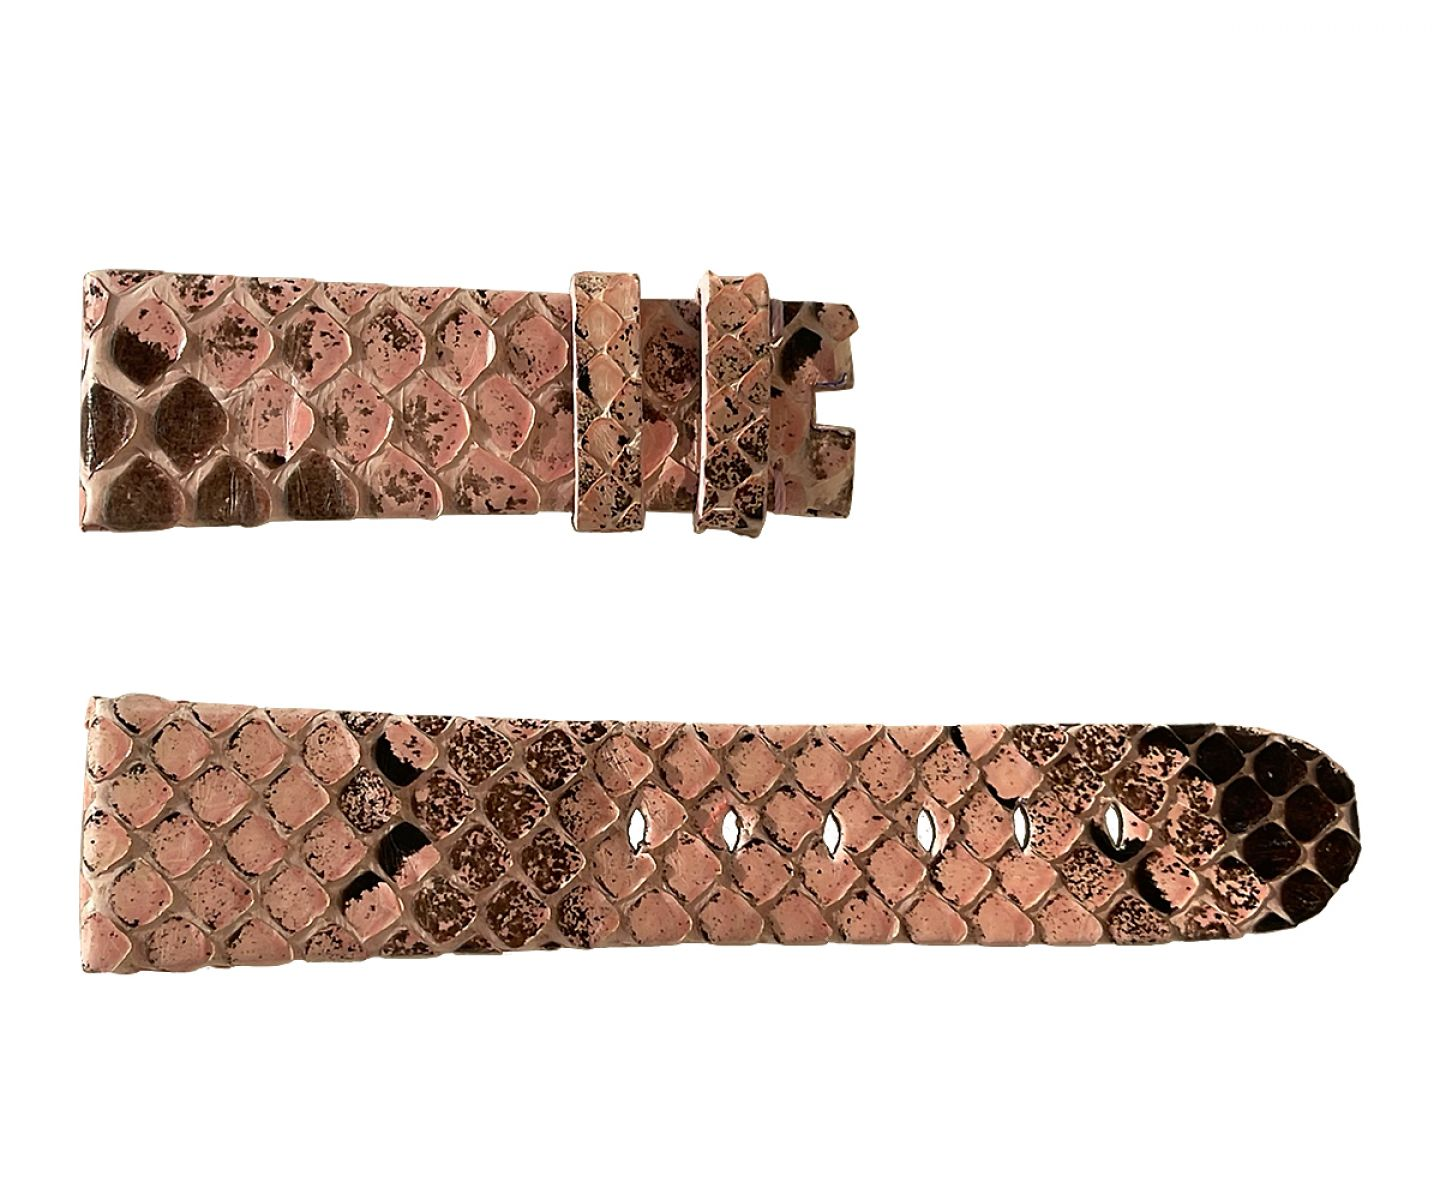 Pink Python Leather Strap 16mm, 18mm, 19mm, 20mm, 21mm, 22mm General style